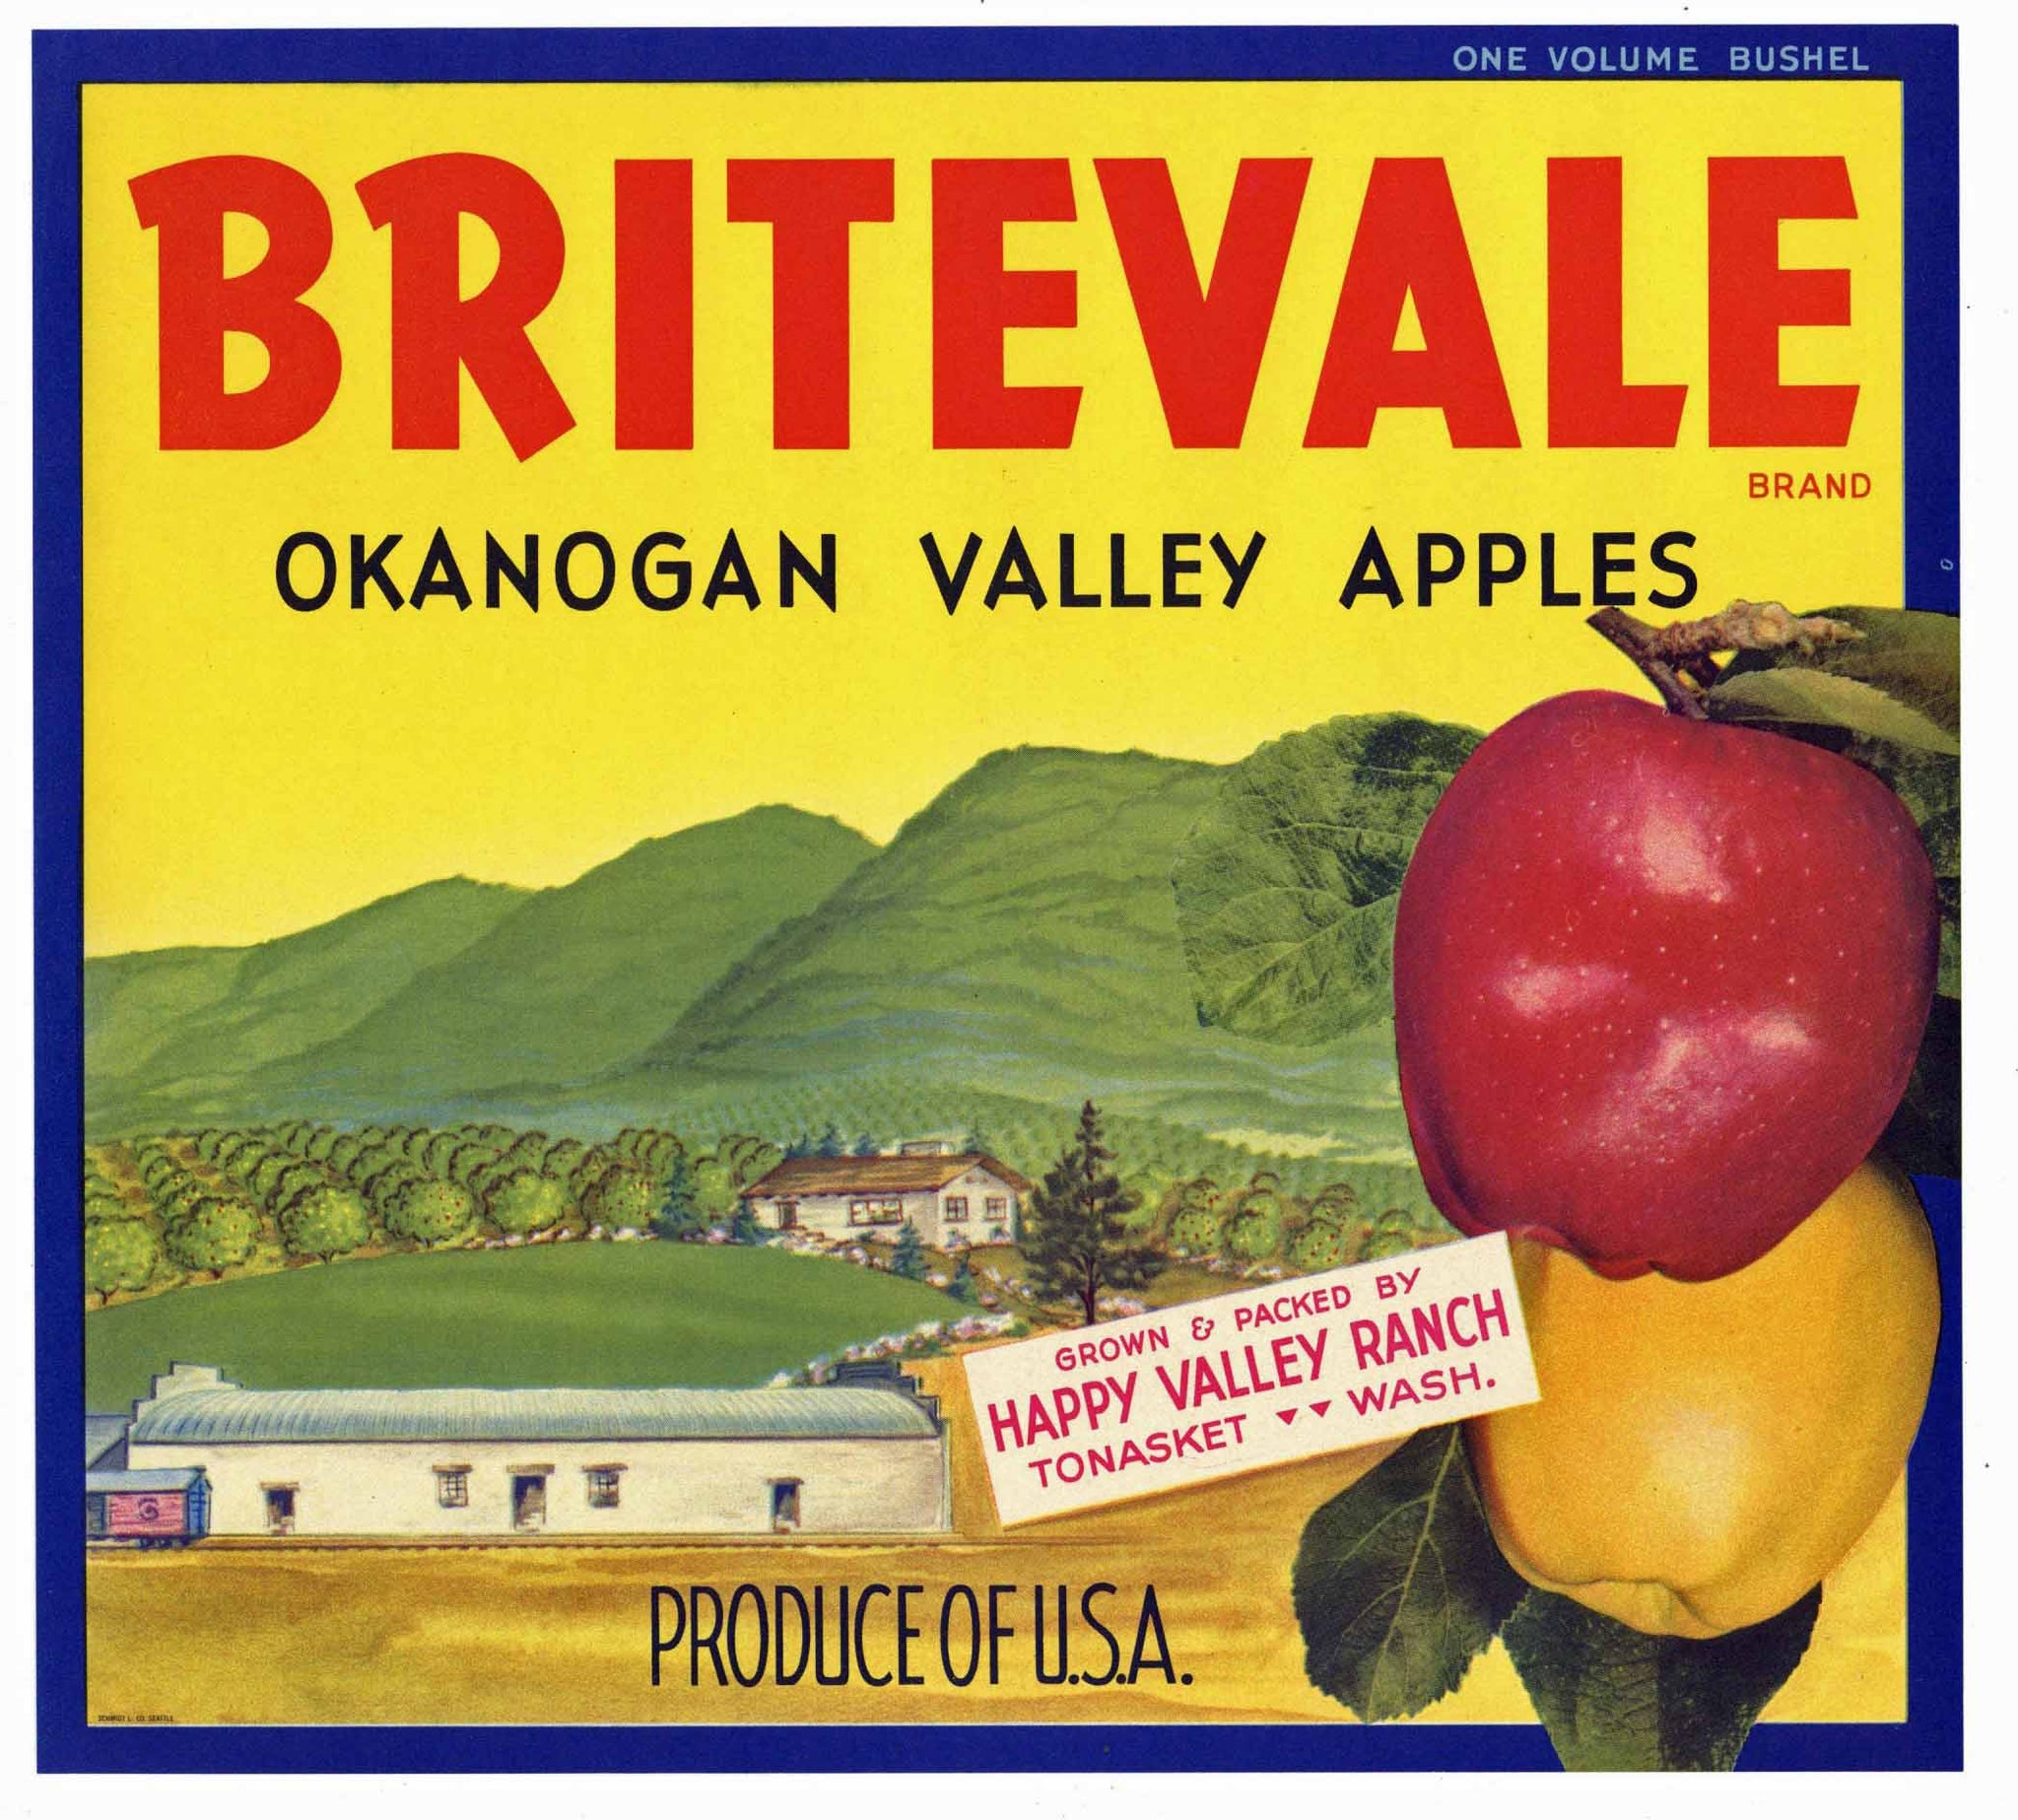 Britevale Brand Vintage Washington Apple Crate Label